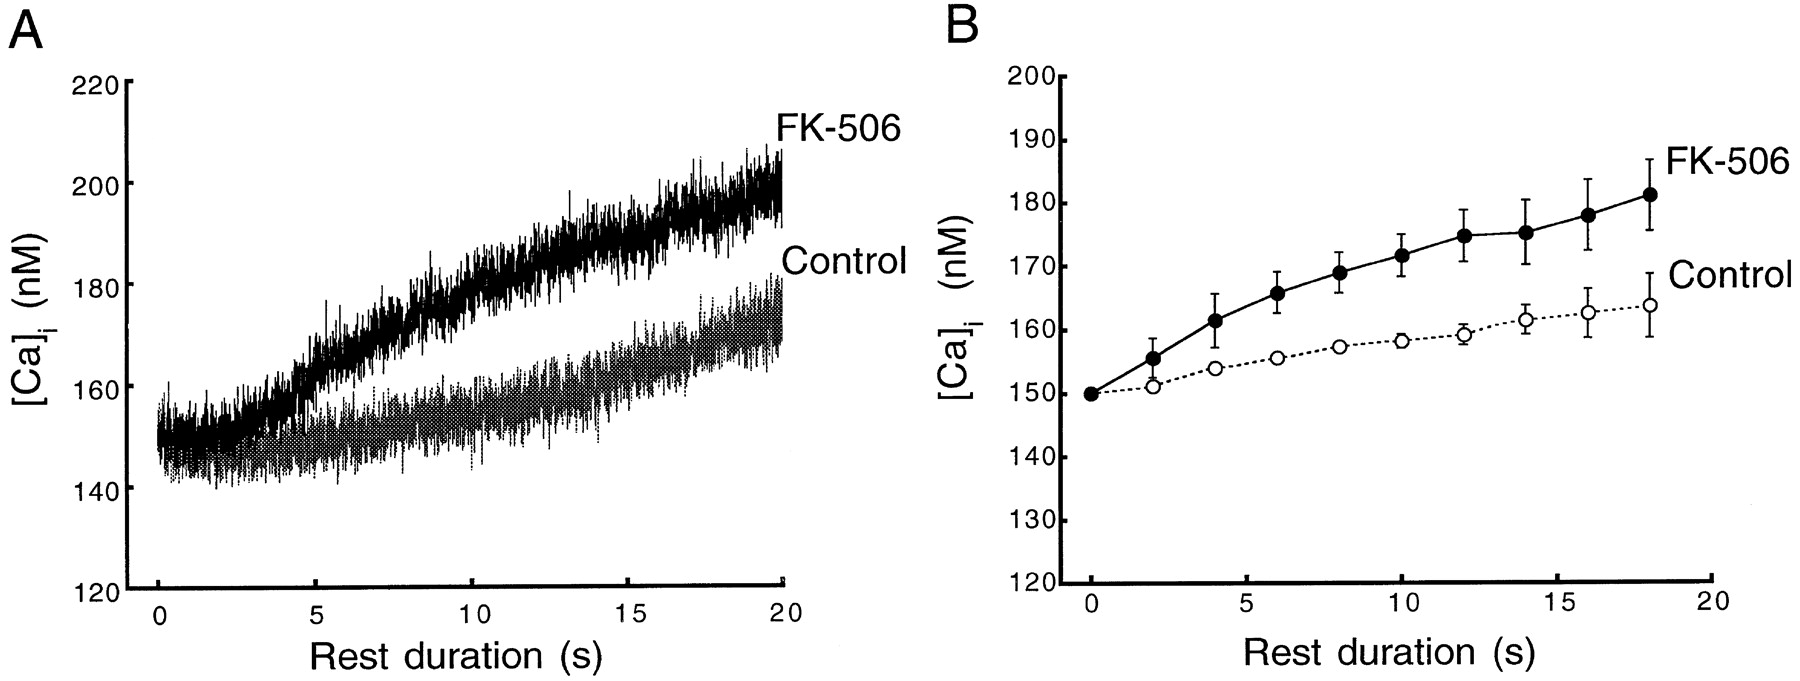 Effects of FK-506 on Contraction and Ca2+ Transients in